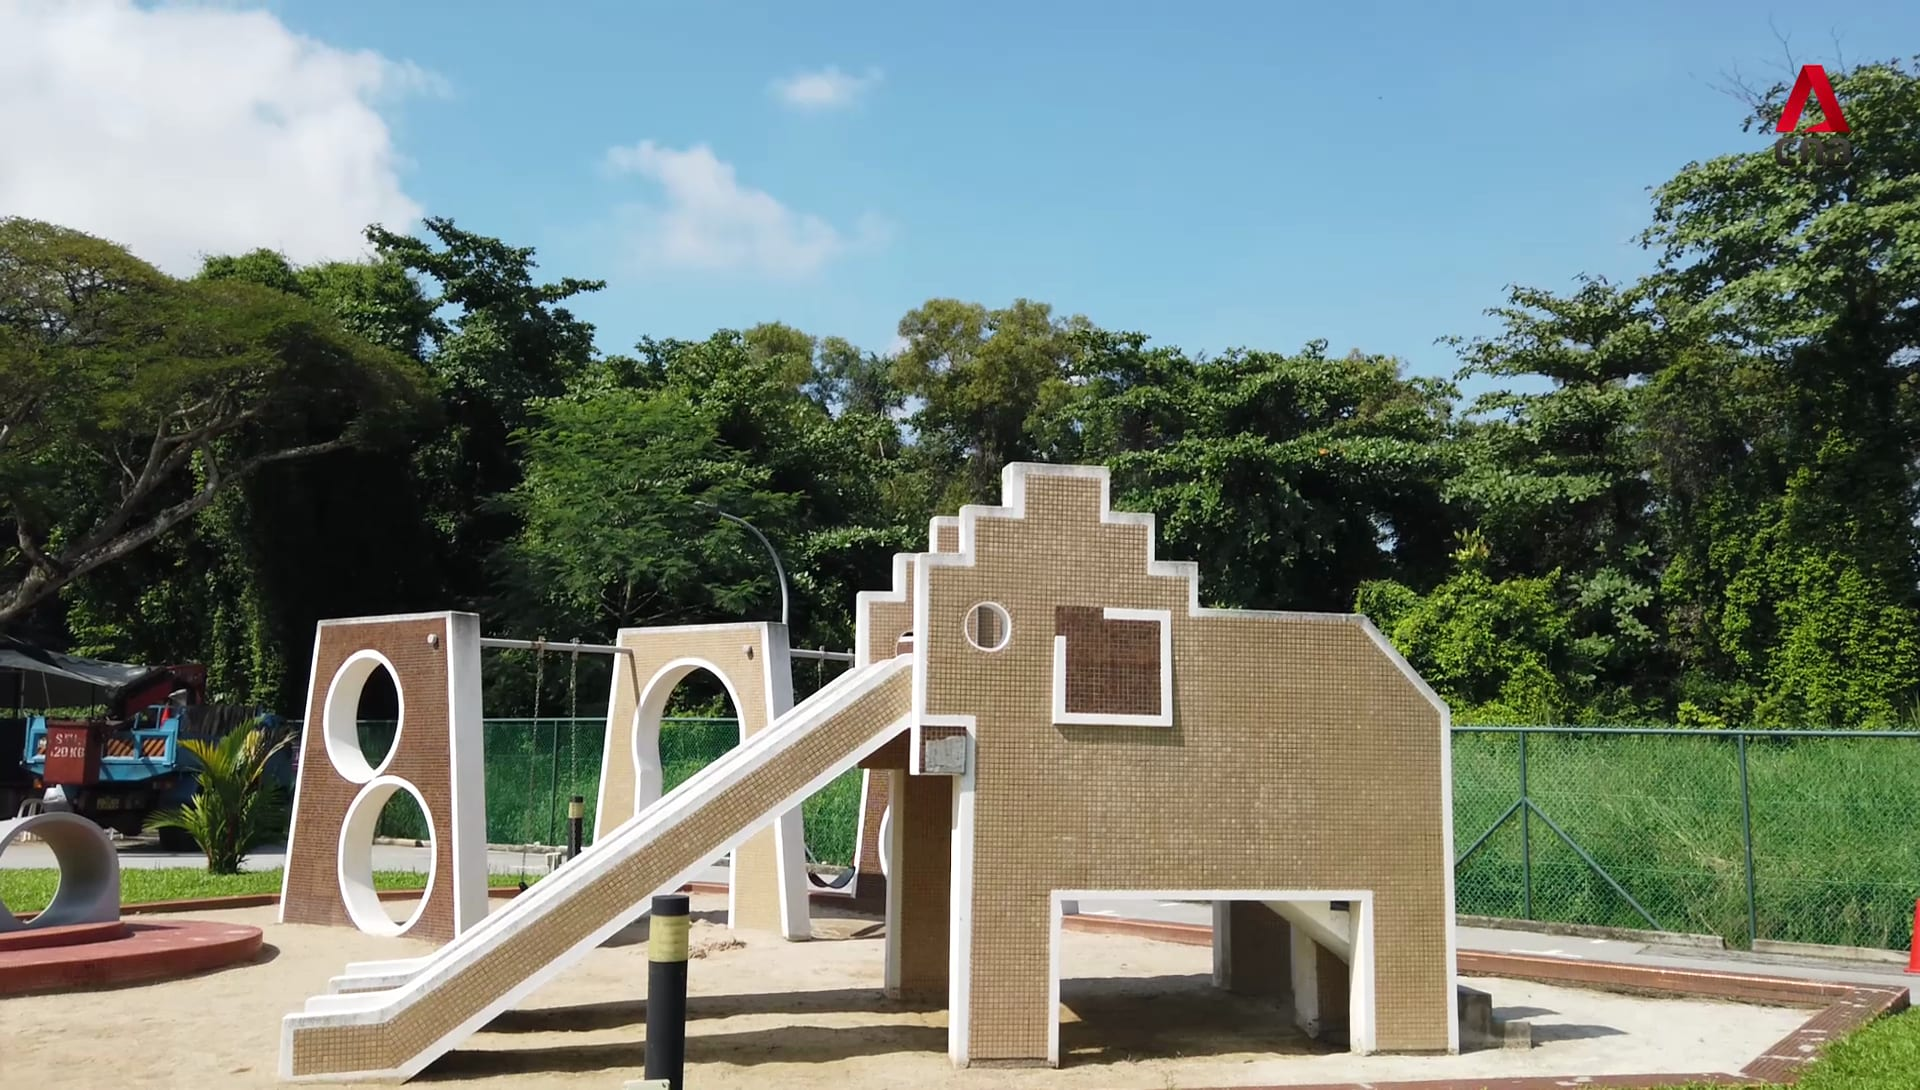 New heritage trail in Pasir Ris - a walkthrough | Video